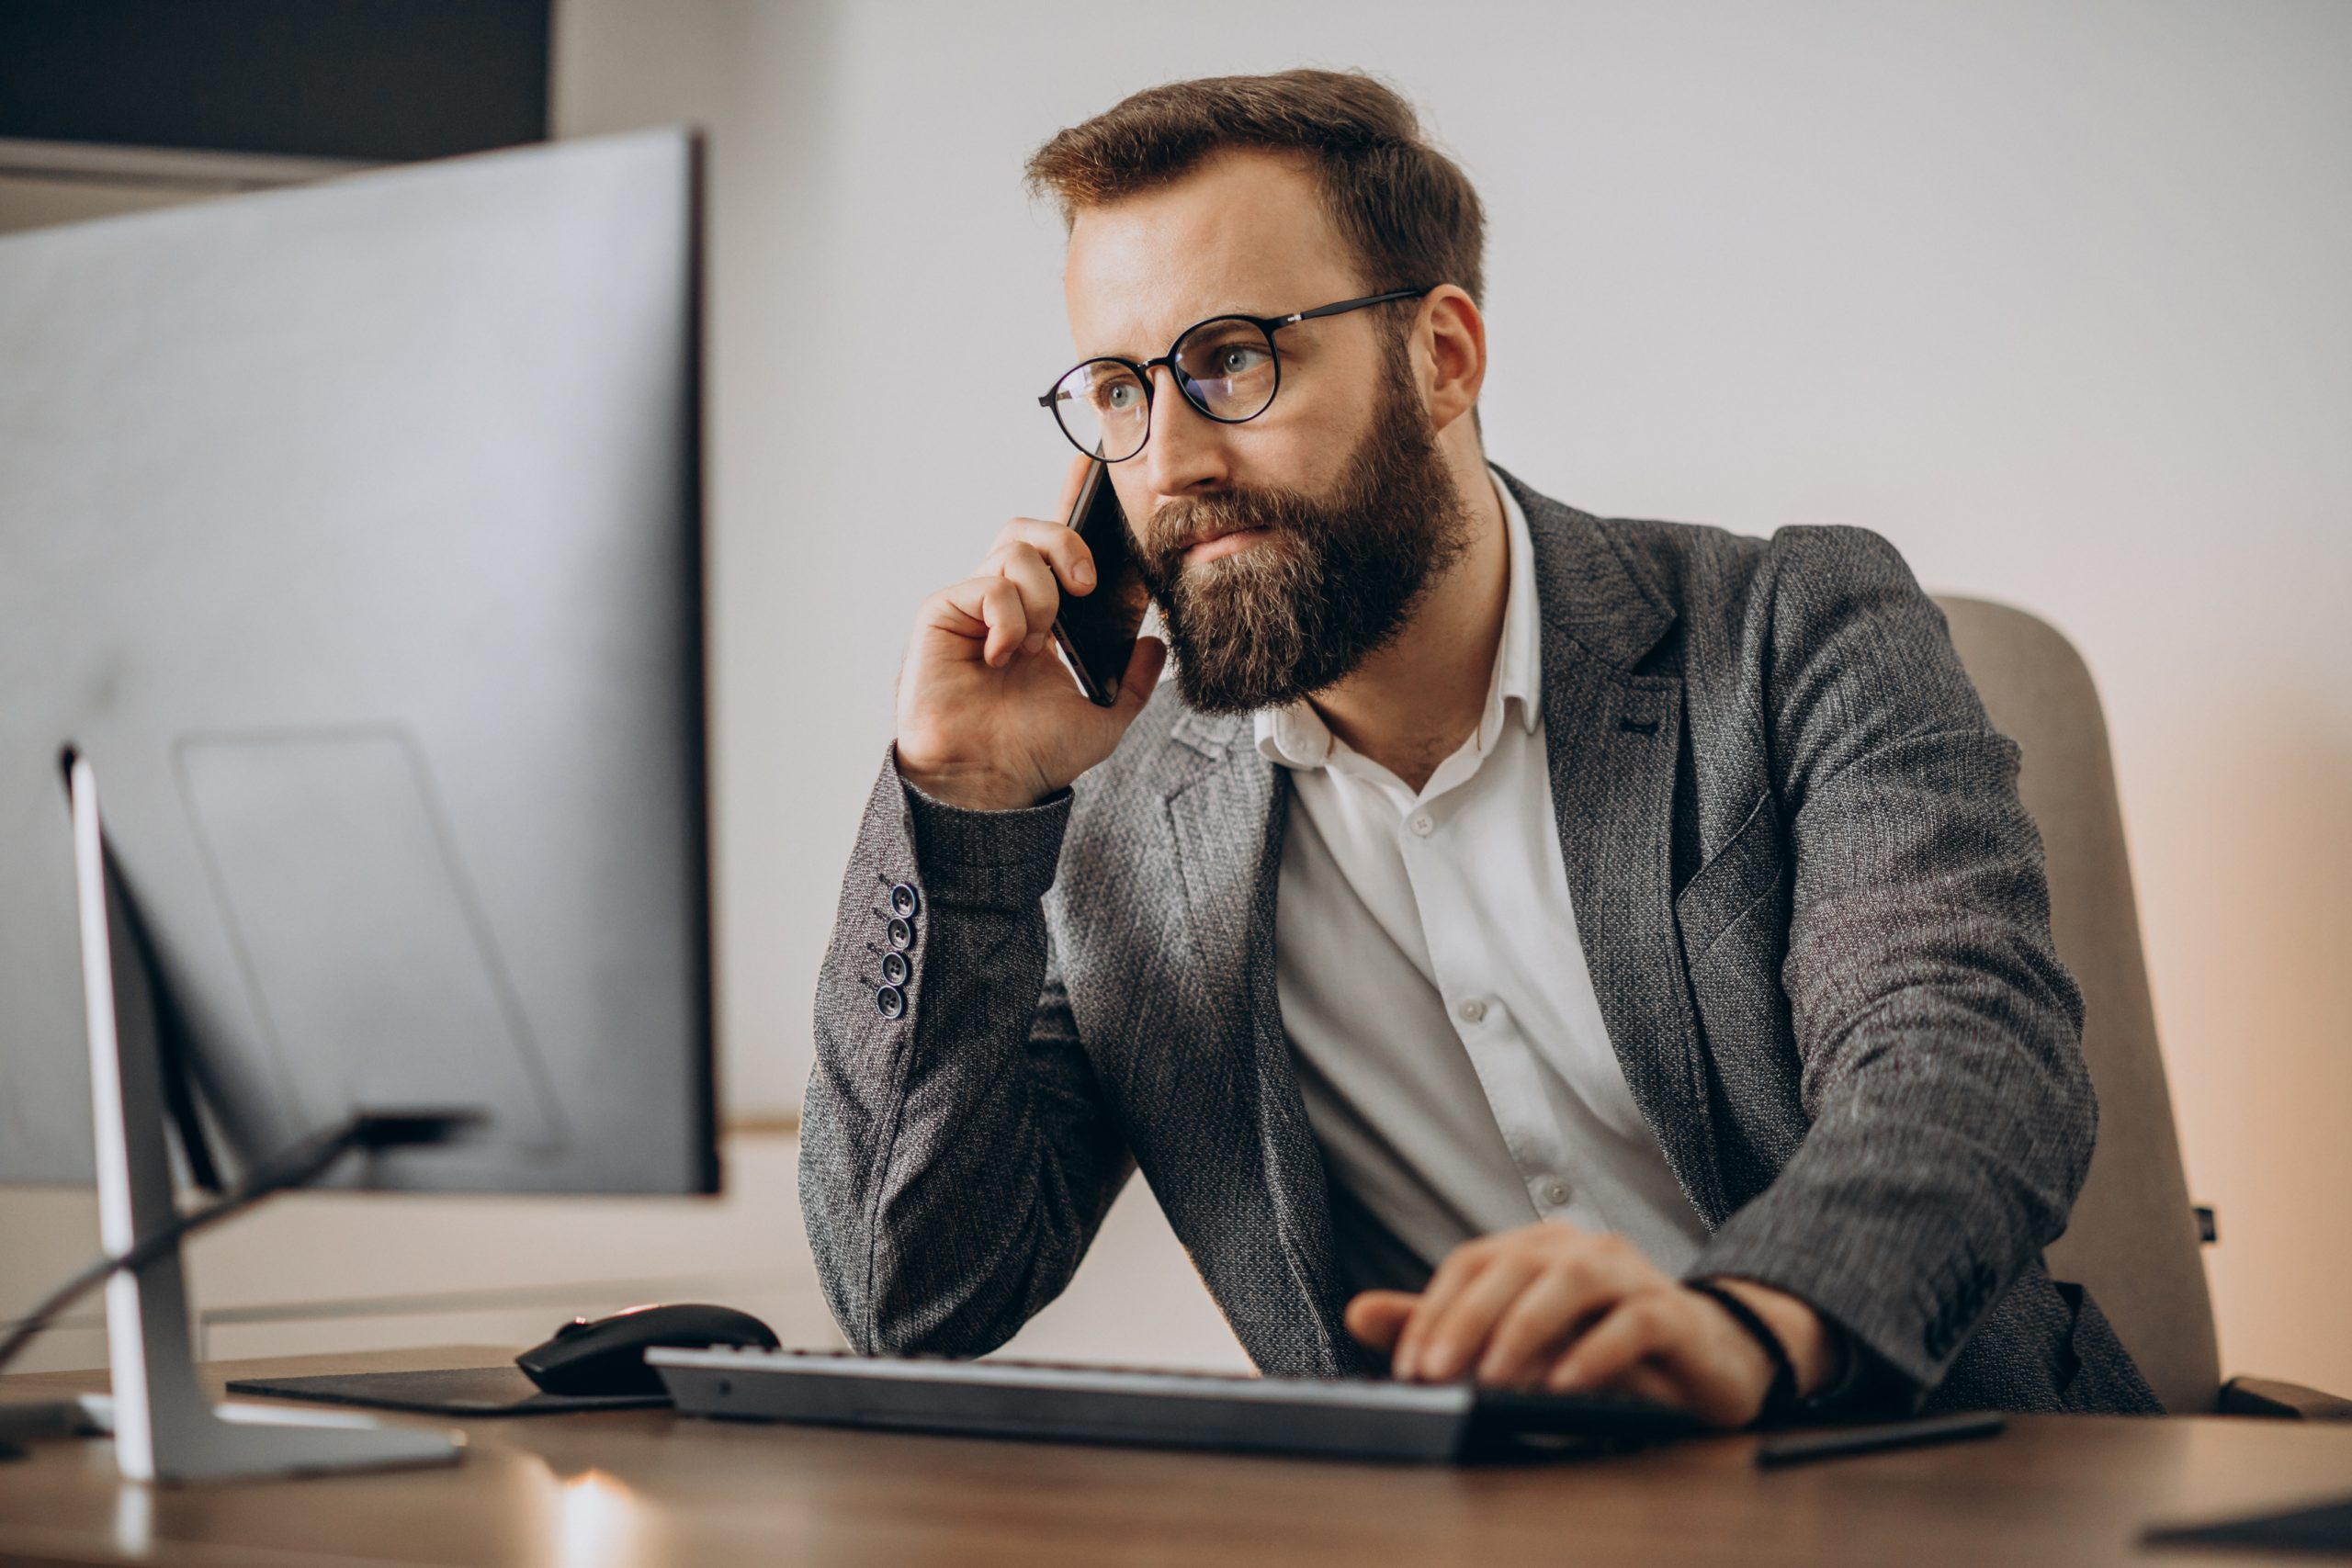 Business talking on phone and working simultaneously